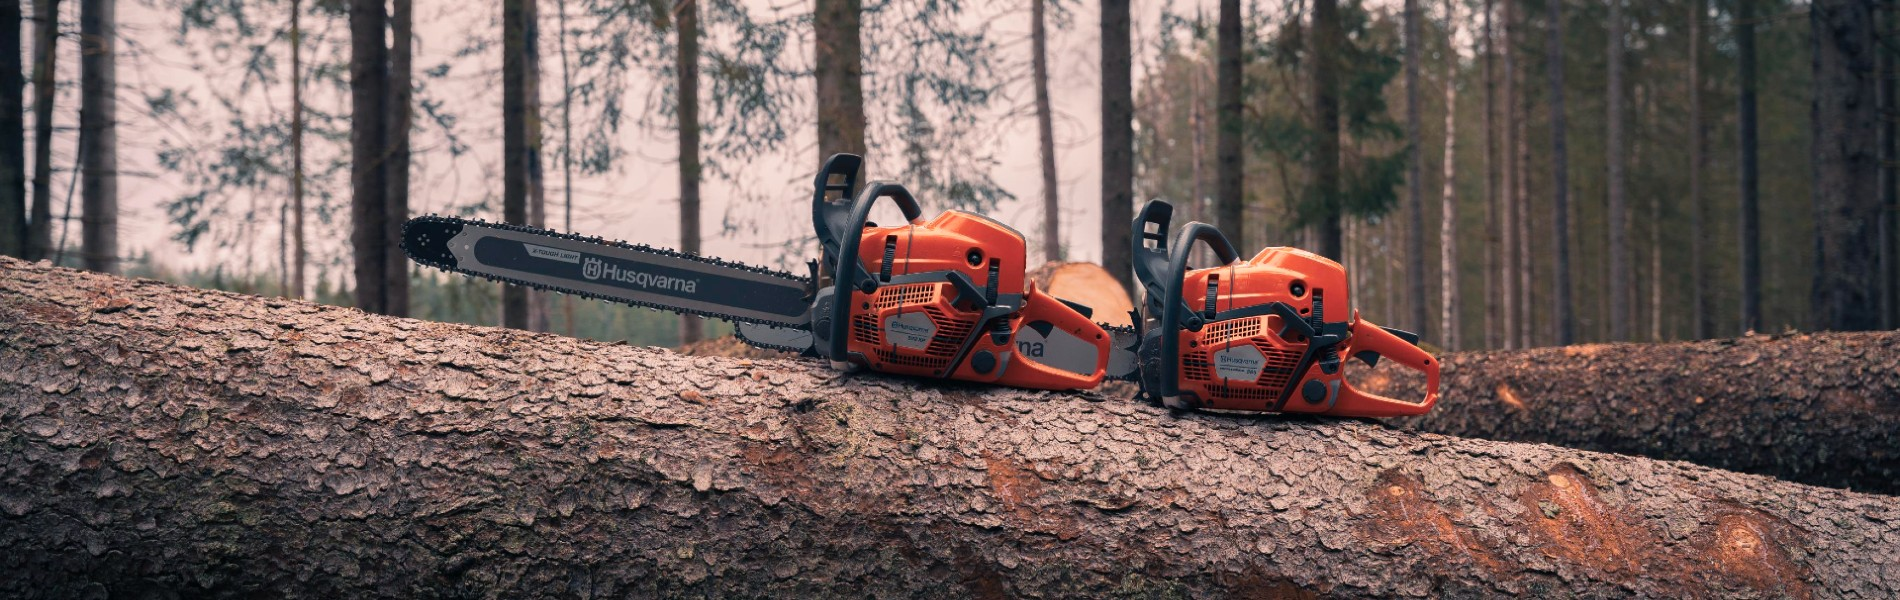 Introducing Husqvarna's new 90cc chainsaws, more powerful, more reliable and comfortable  for the operator